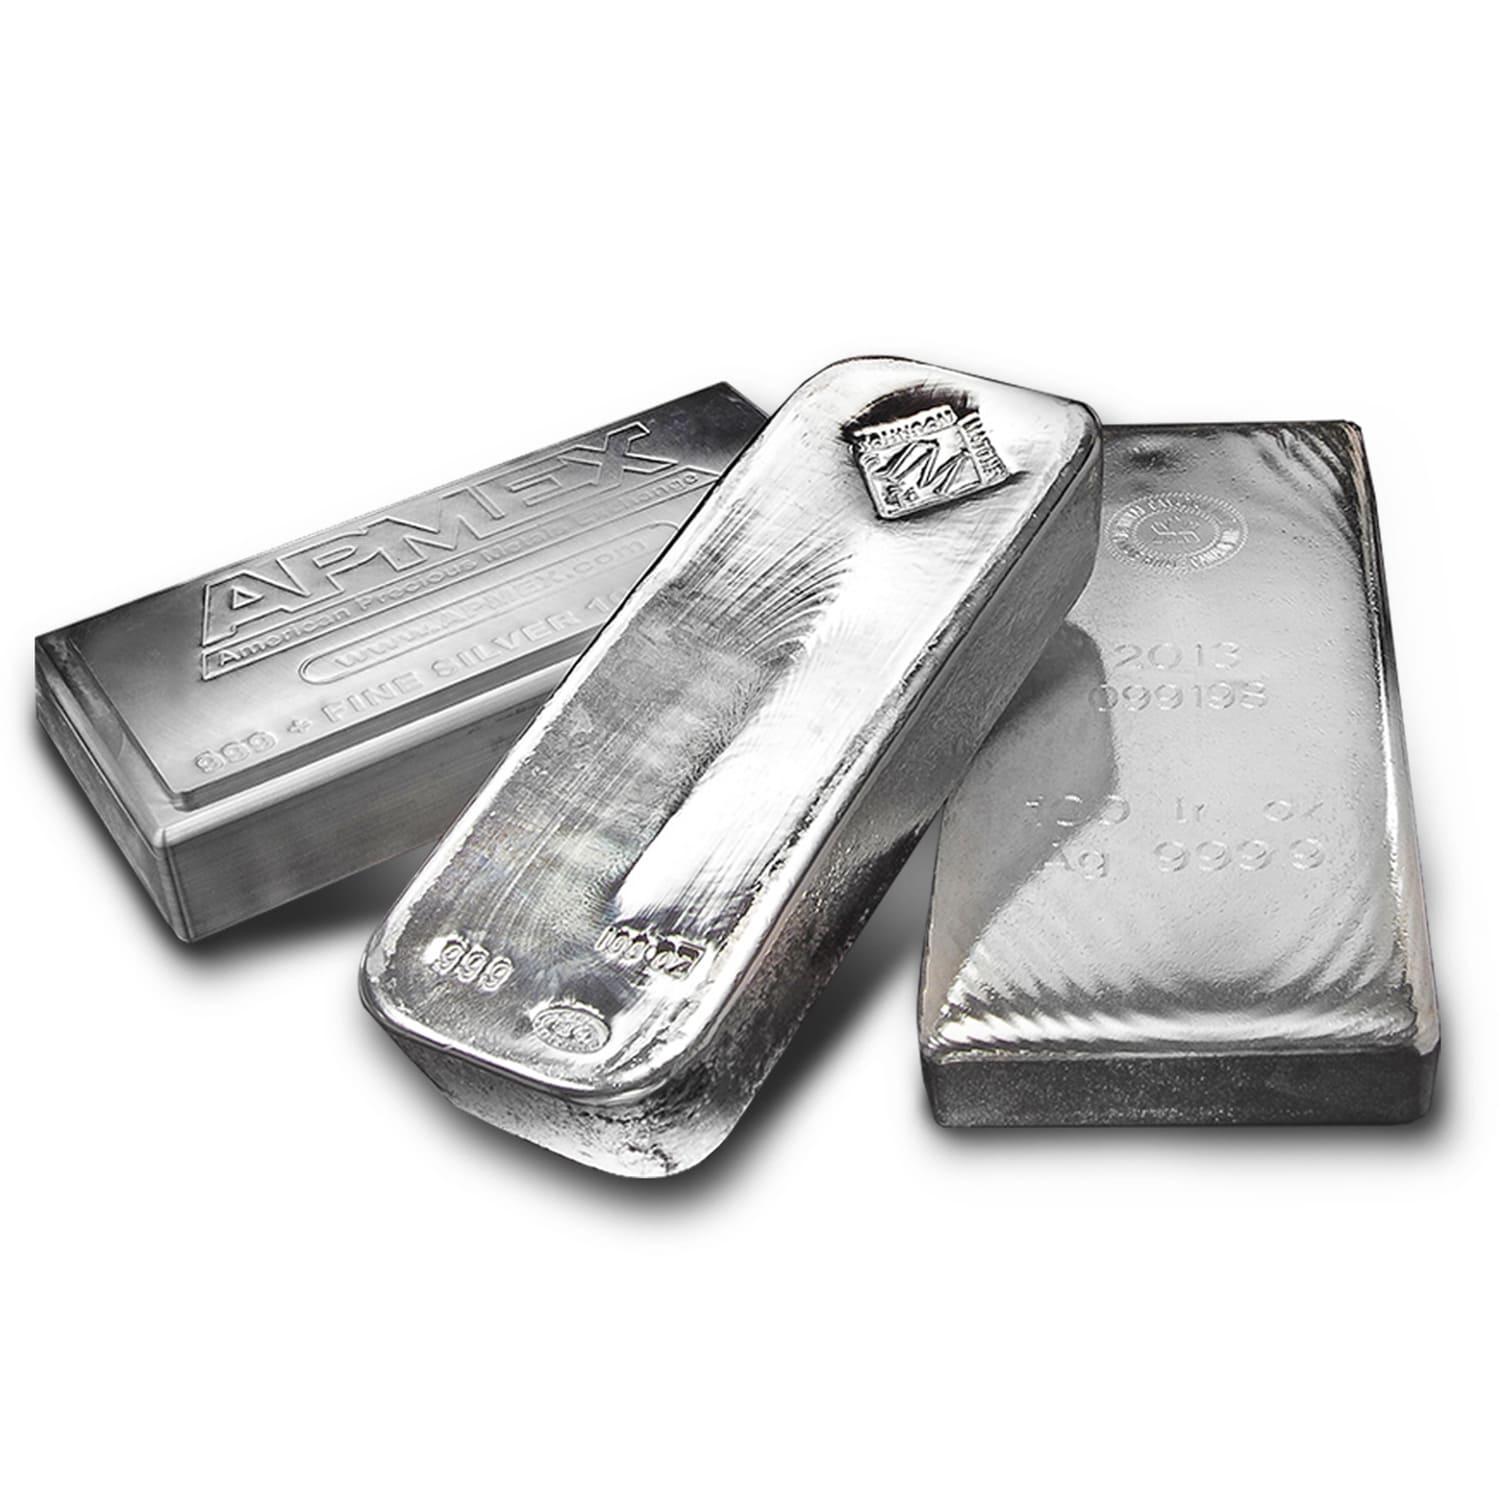 102.08 oz Silver Bars - Secondary Market